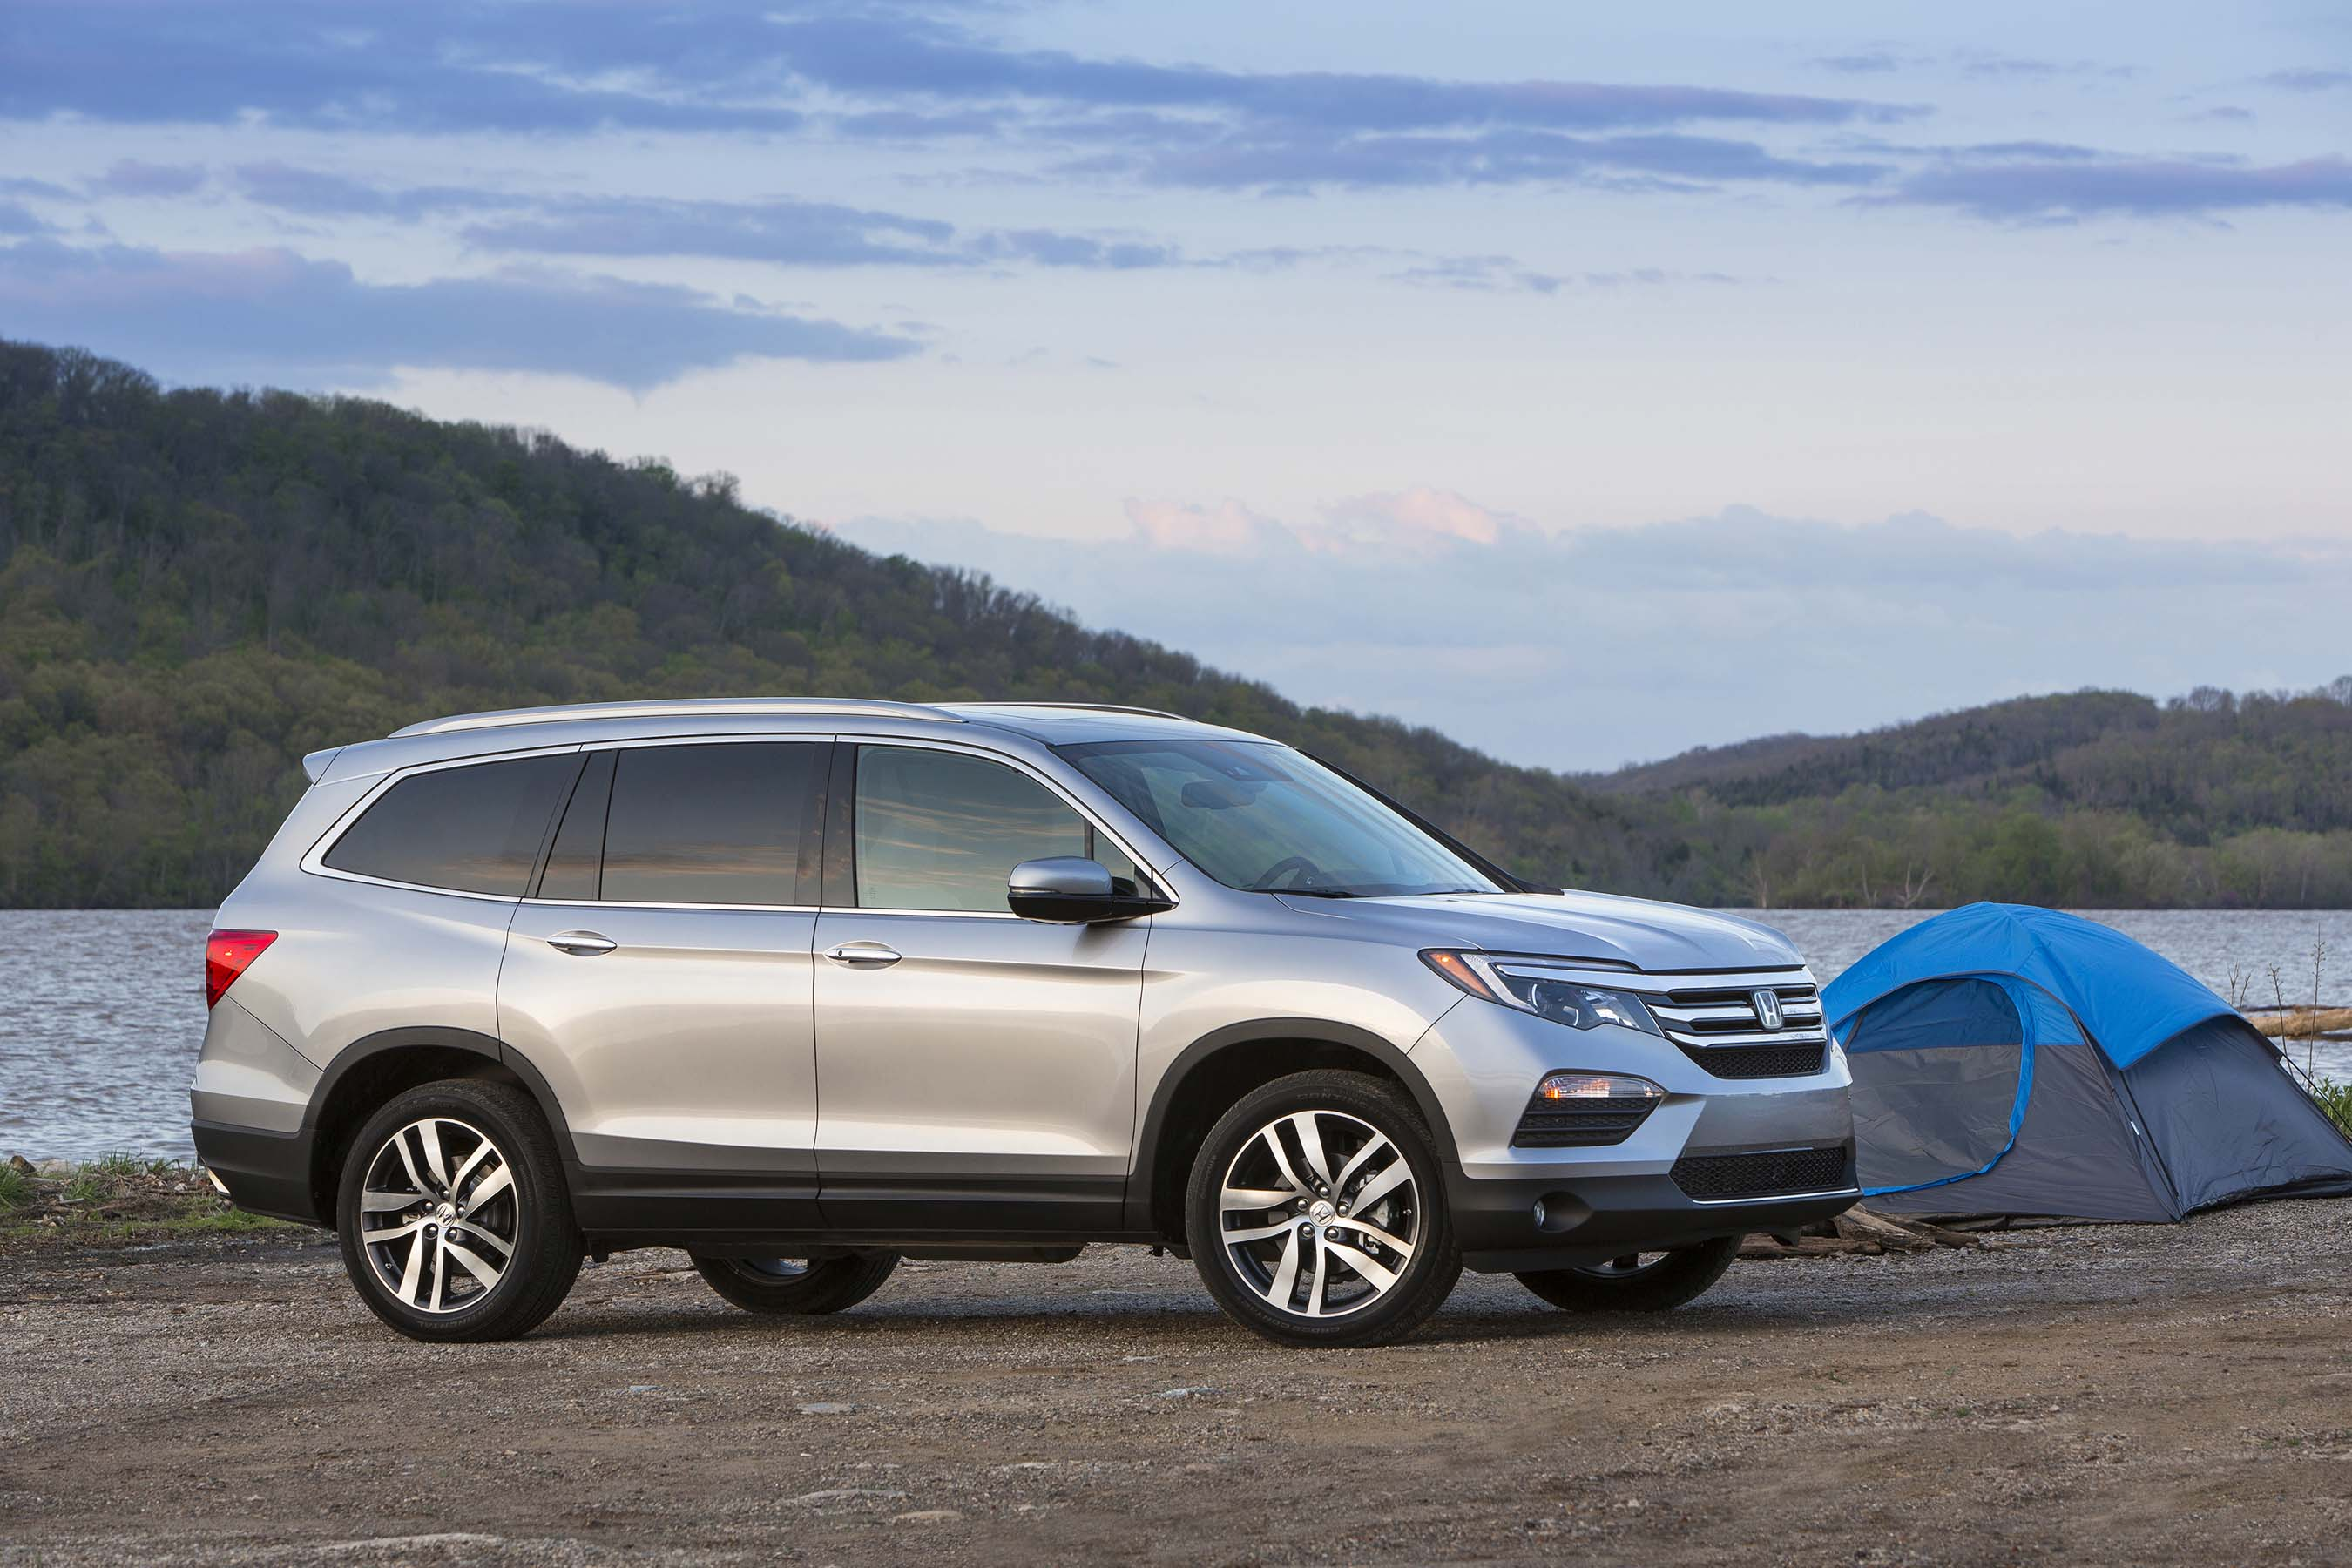 Kelley Blue Book Names 16 Best Family Cars Of 2016 Feb 4 2016